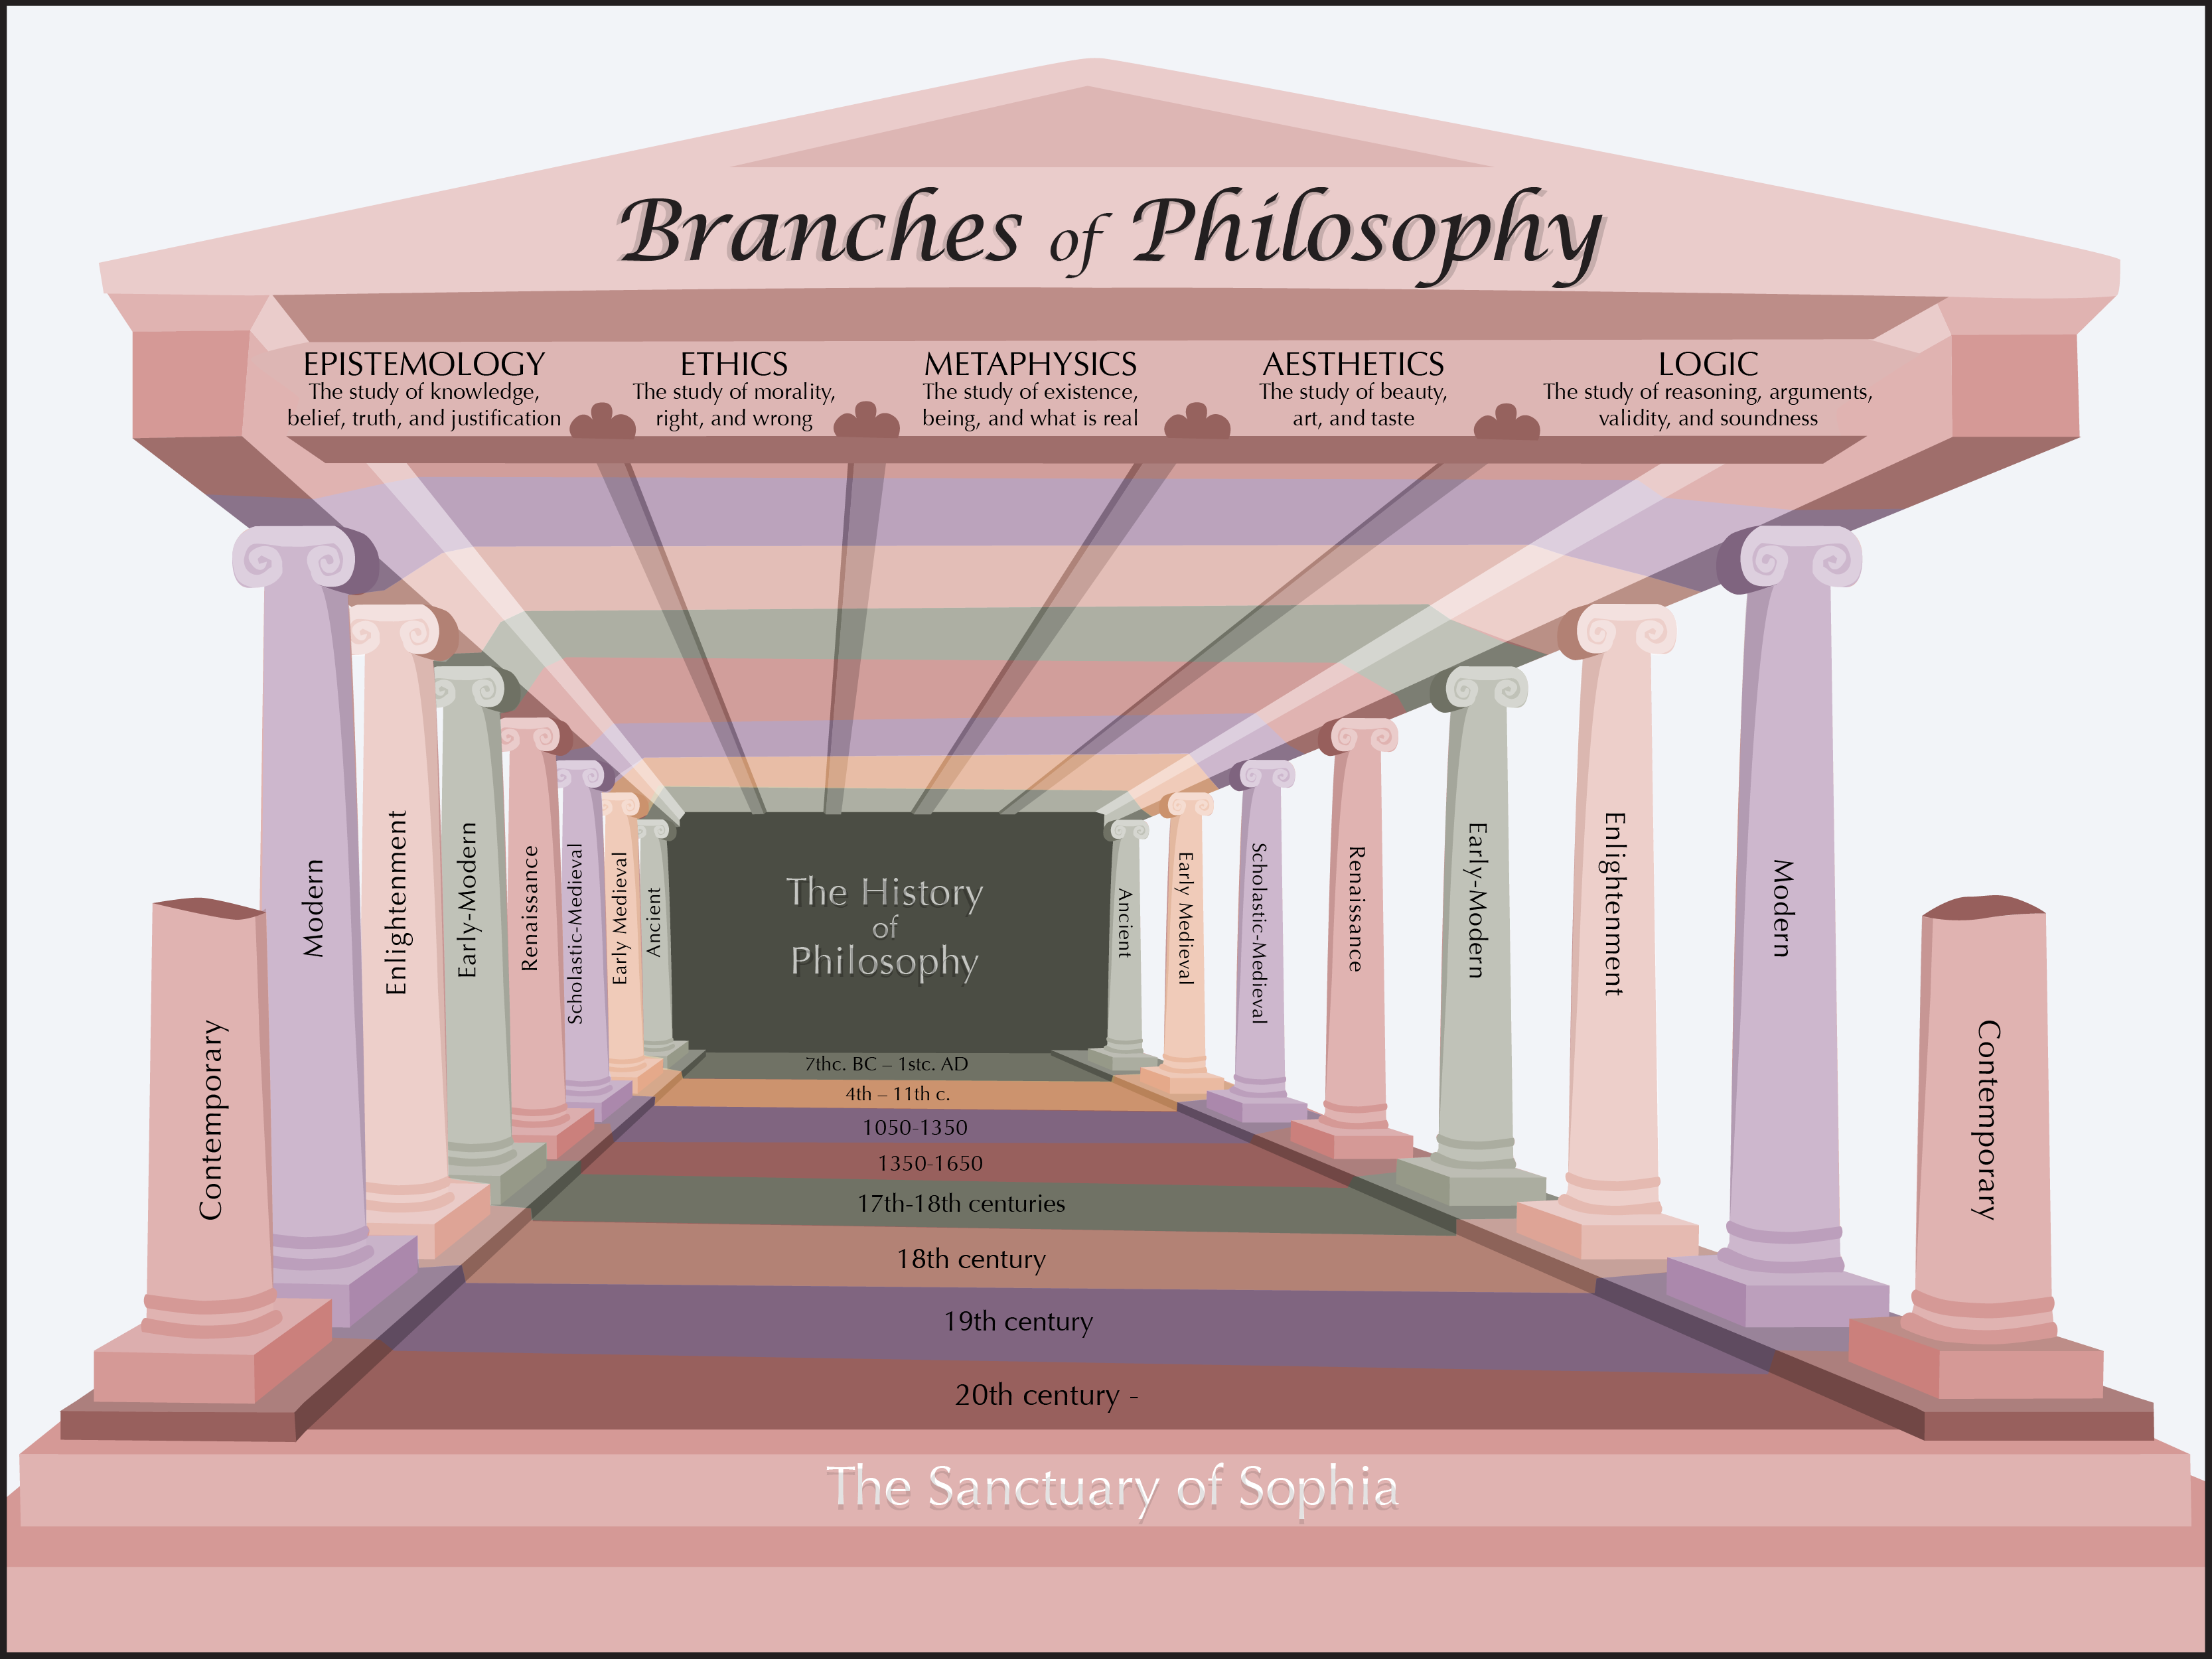 Image depicting the branches of philosophy